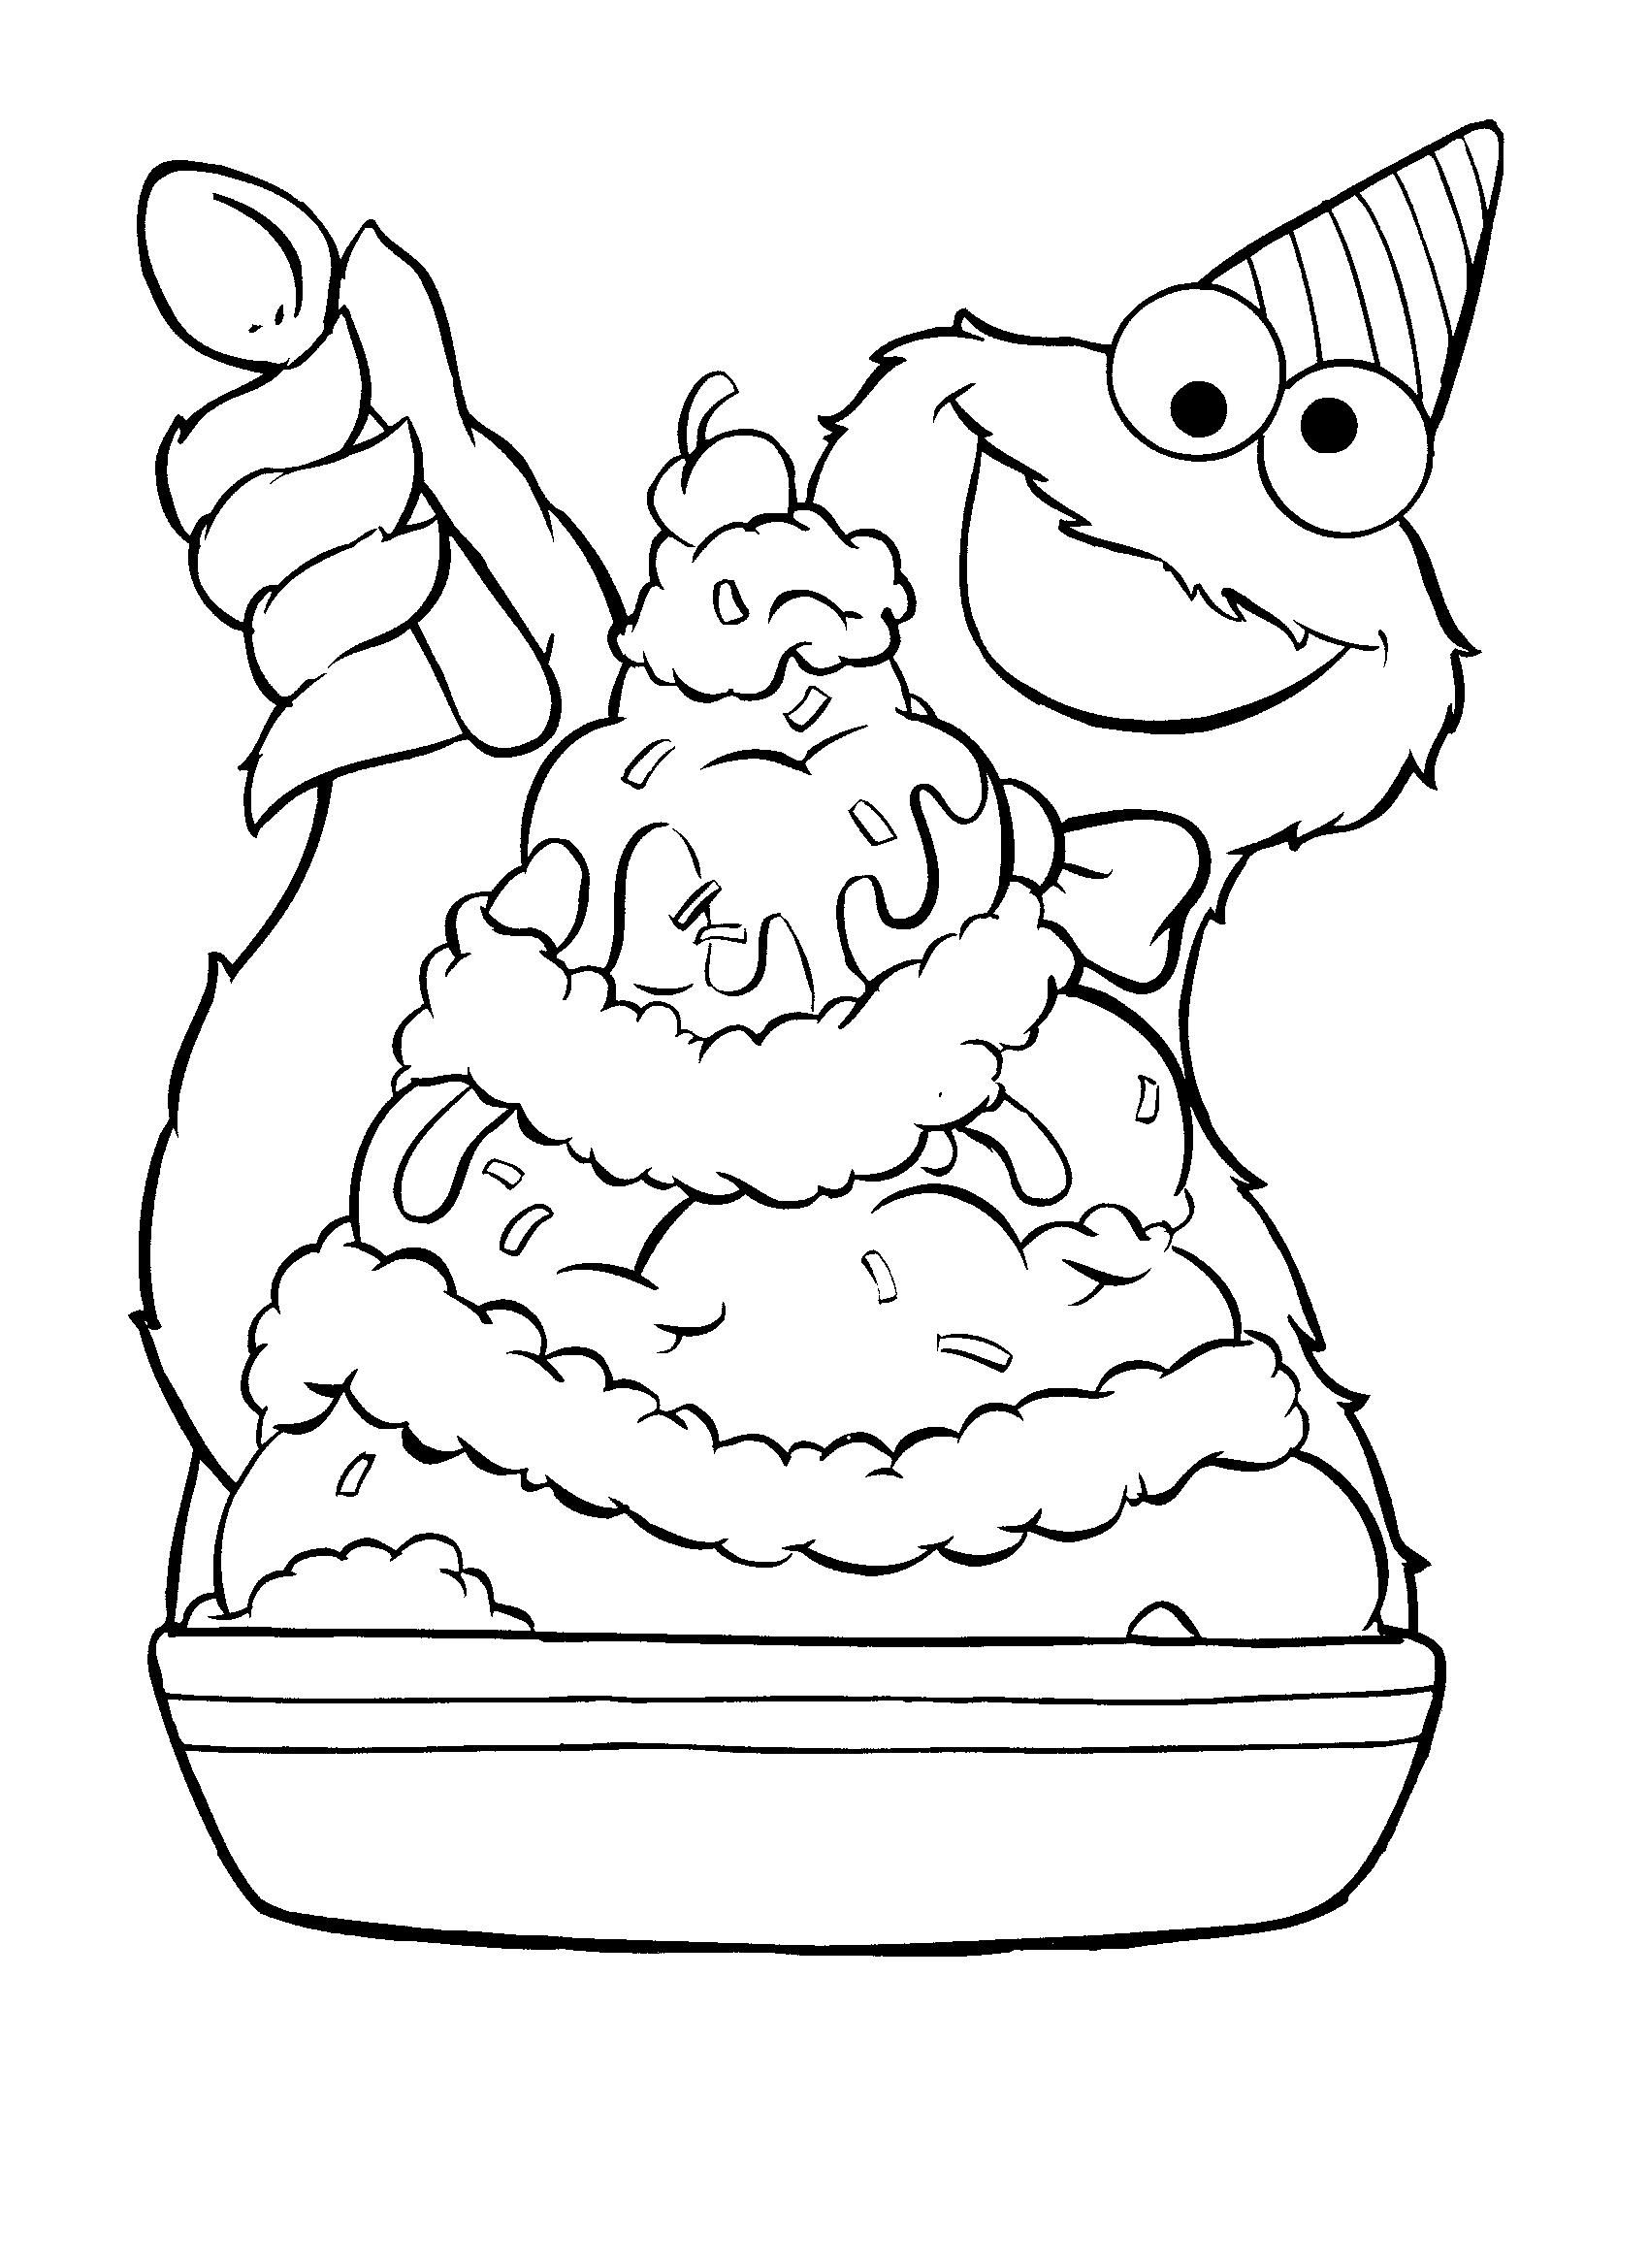 Cookie monster ice cream sundae coloring pages for Coloring pages elmo cookie monster